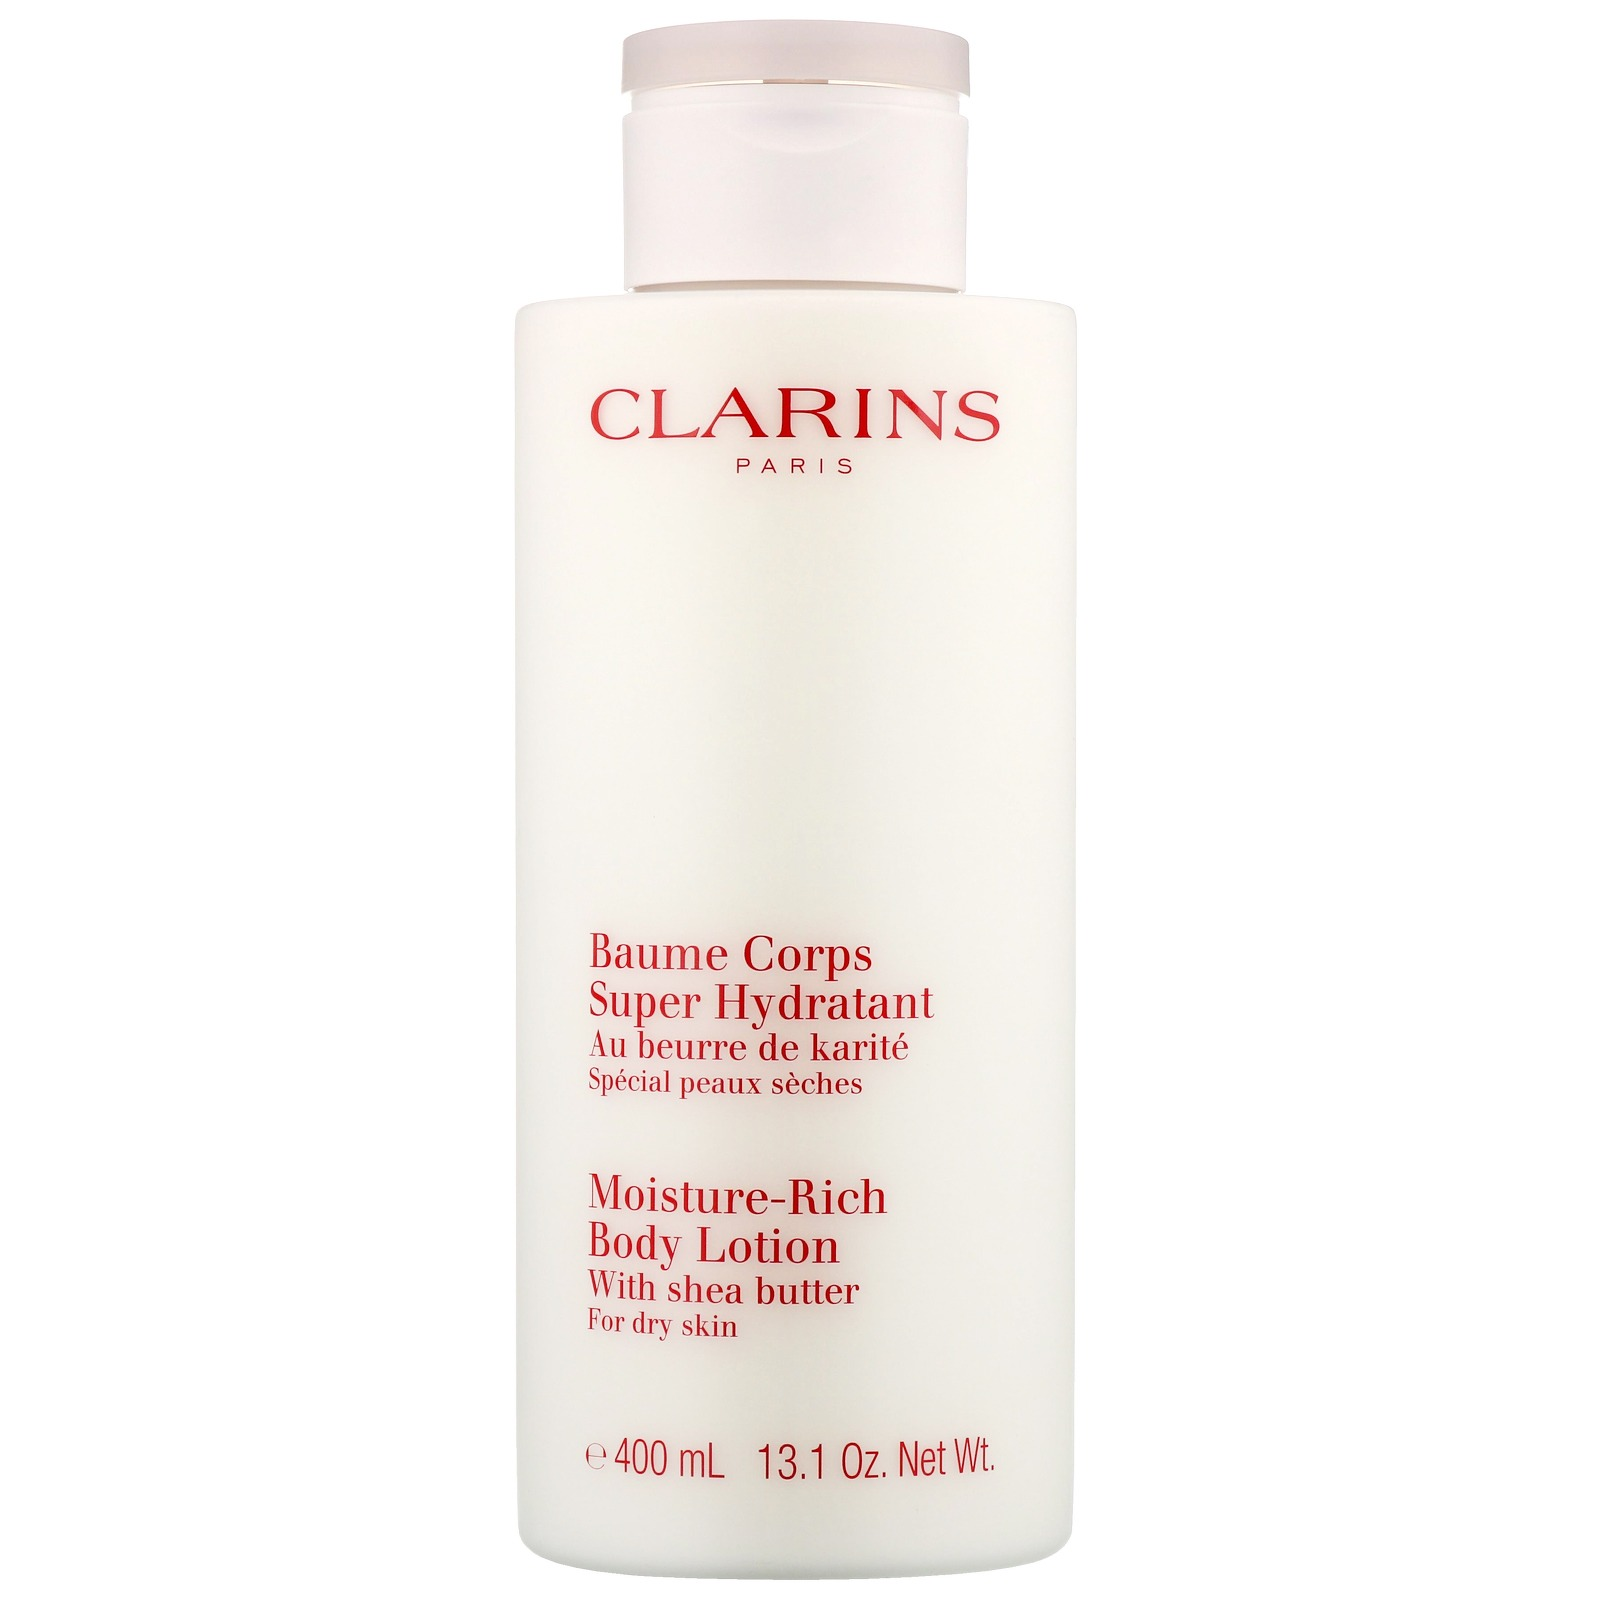 Clarins Body Moisturisers Moisture-Rich Body Lotion with Shea Butter For Dry Skin 400ml / 13.1 oz.